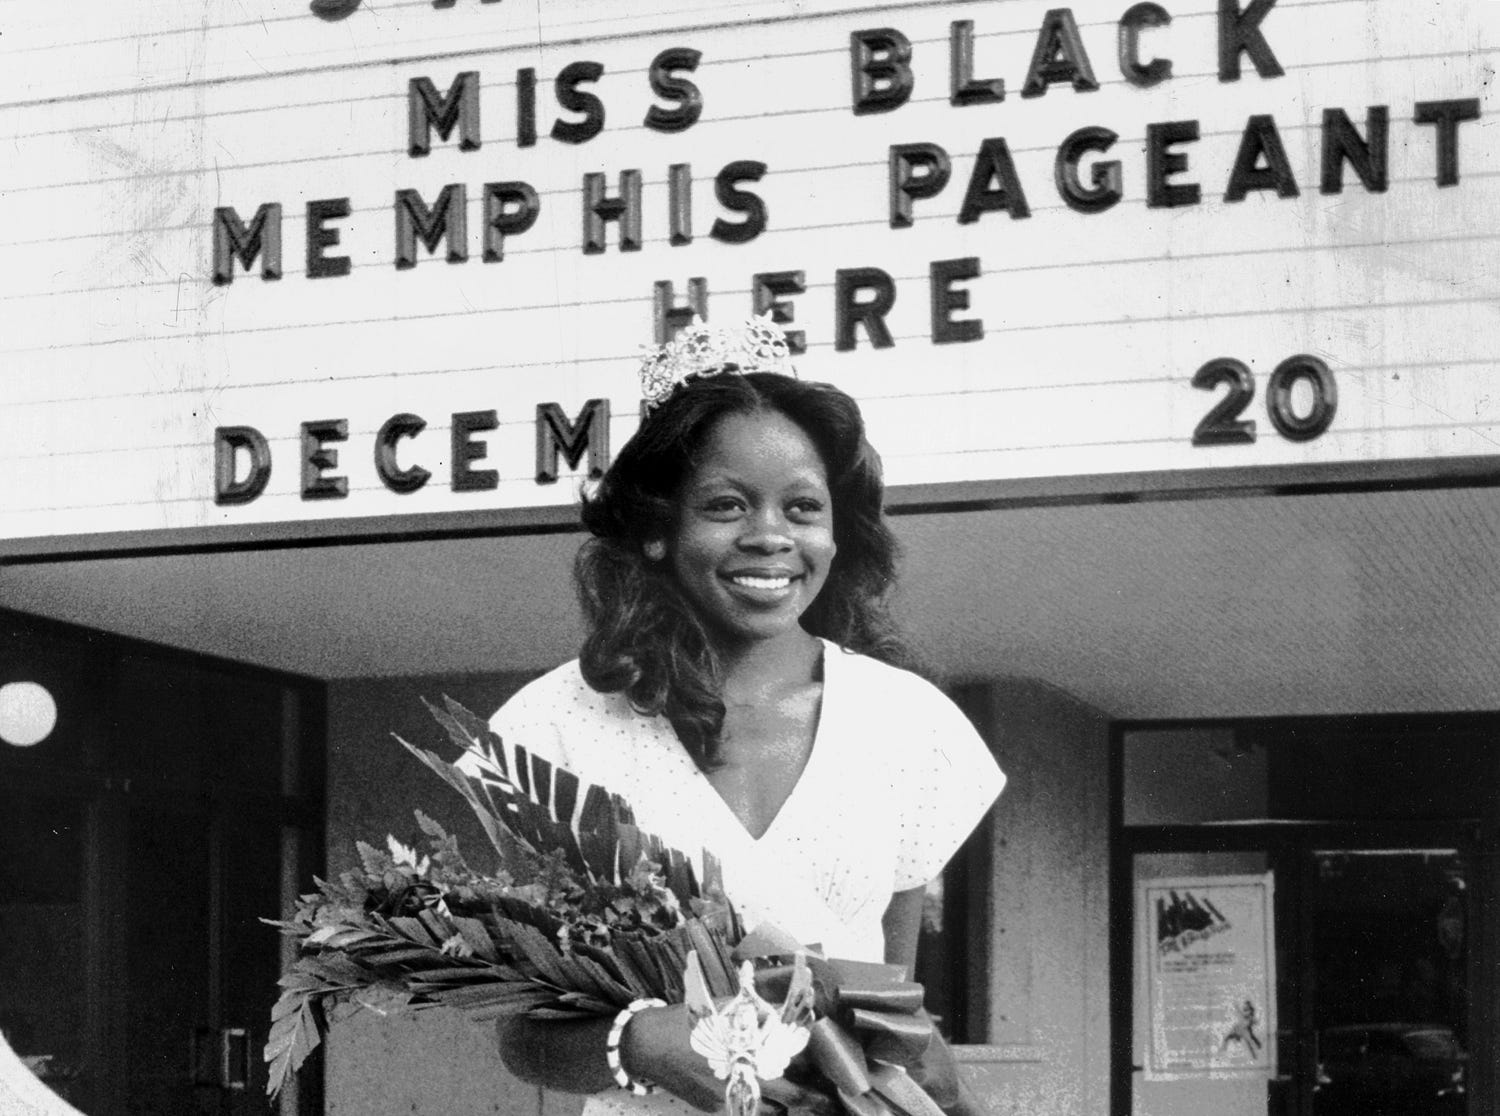 Twenty year-old Miss Ann Polk won the Miss Black Memphis Pageant on Dec. 20, 1975, at the Towne 11 theater. A student at Elkins Institute studying radio broadcasting, Miss Polk is the daughter of Mrs. Laura Watson of 2333 Dwight. She won over 16 other girls and will represent Memphis in the Miss Black Tennessee Pageant.